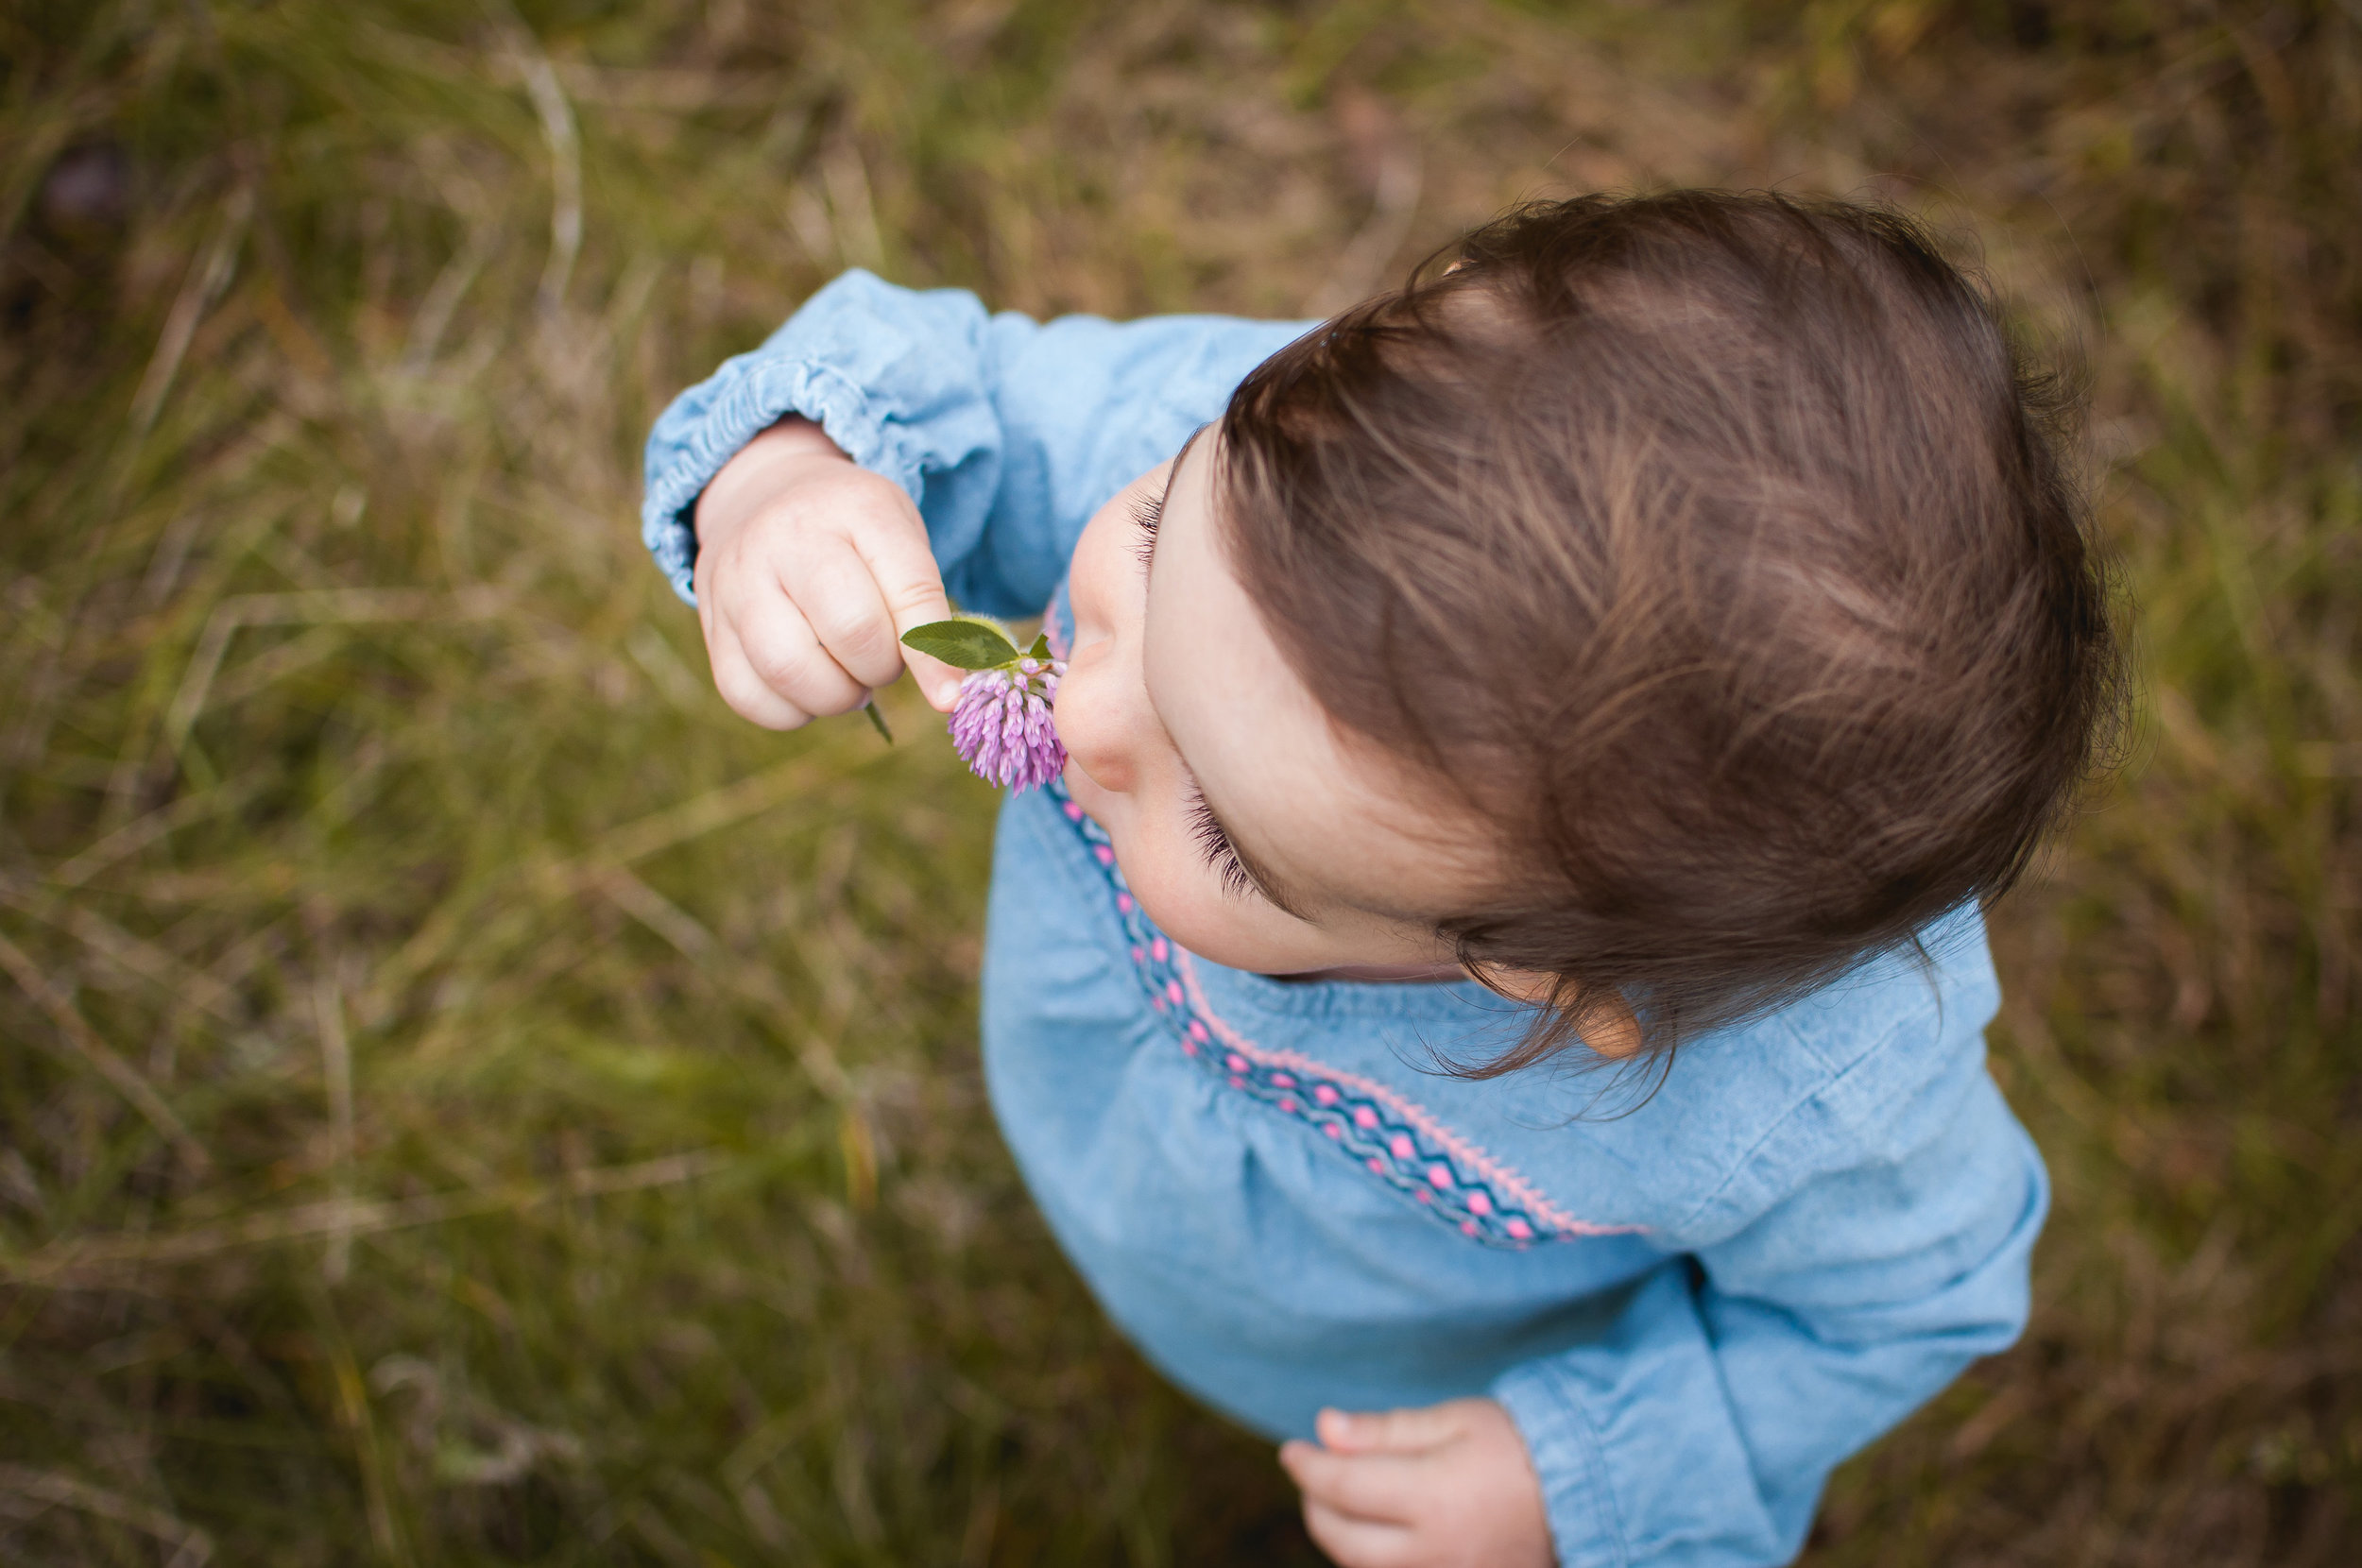 Child holds up a flower during family portrait session in Peoria Illinois area.